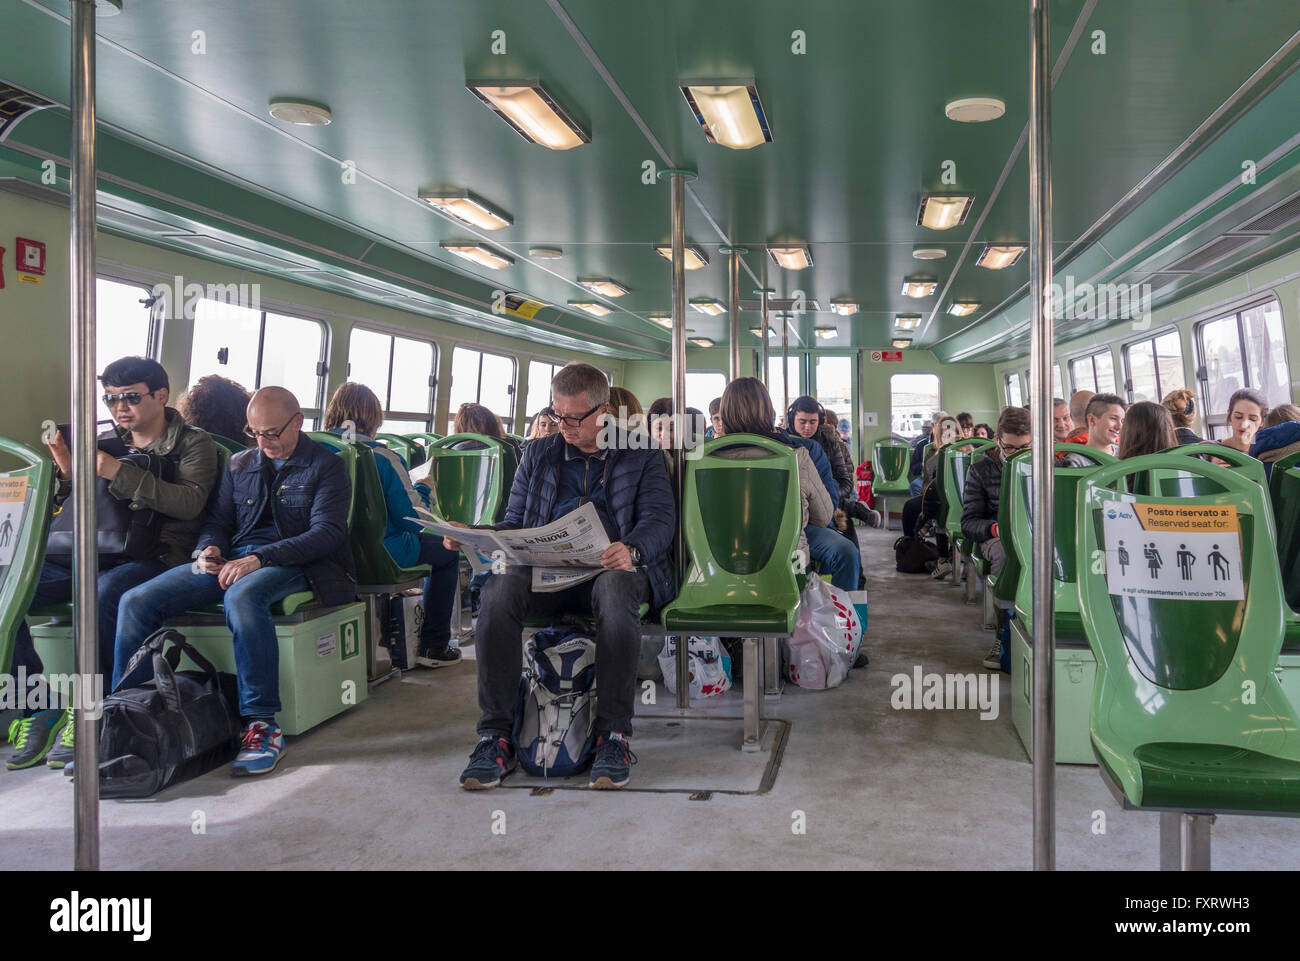 Venice Vaporetto to Murano, Burano and Torcello. Commuters and tourists on the Venice Lagoon water bus. - Stock Image